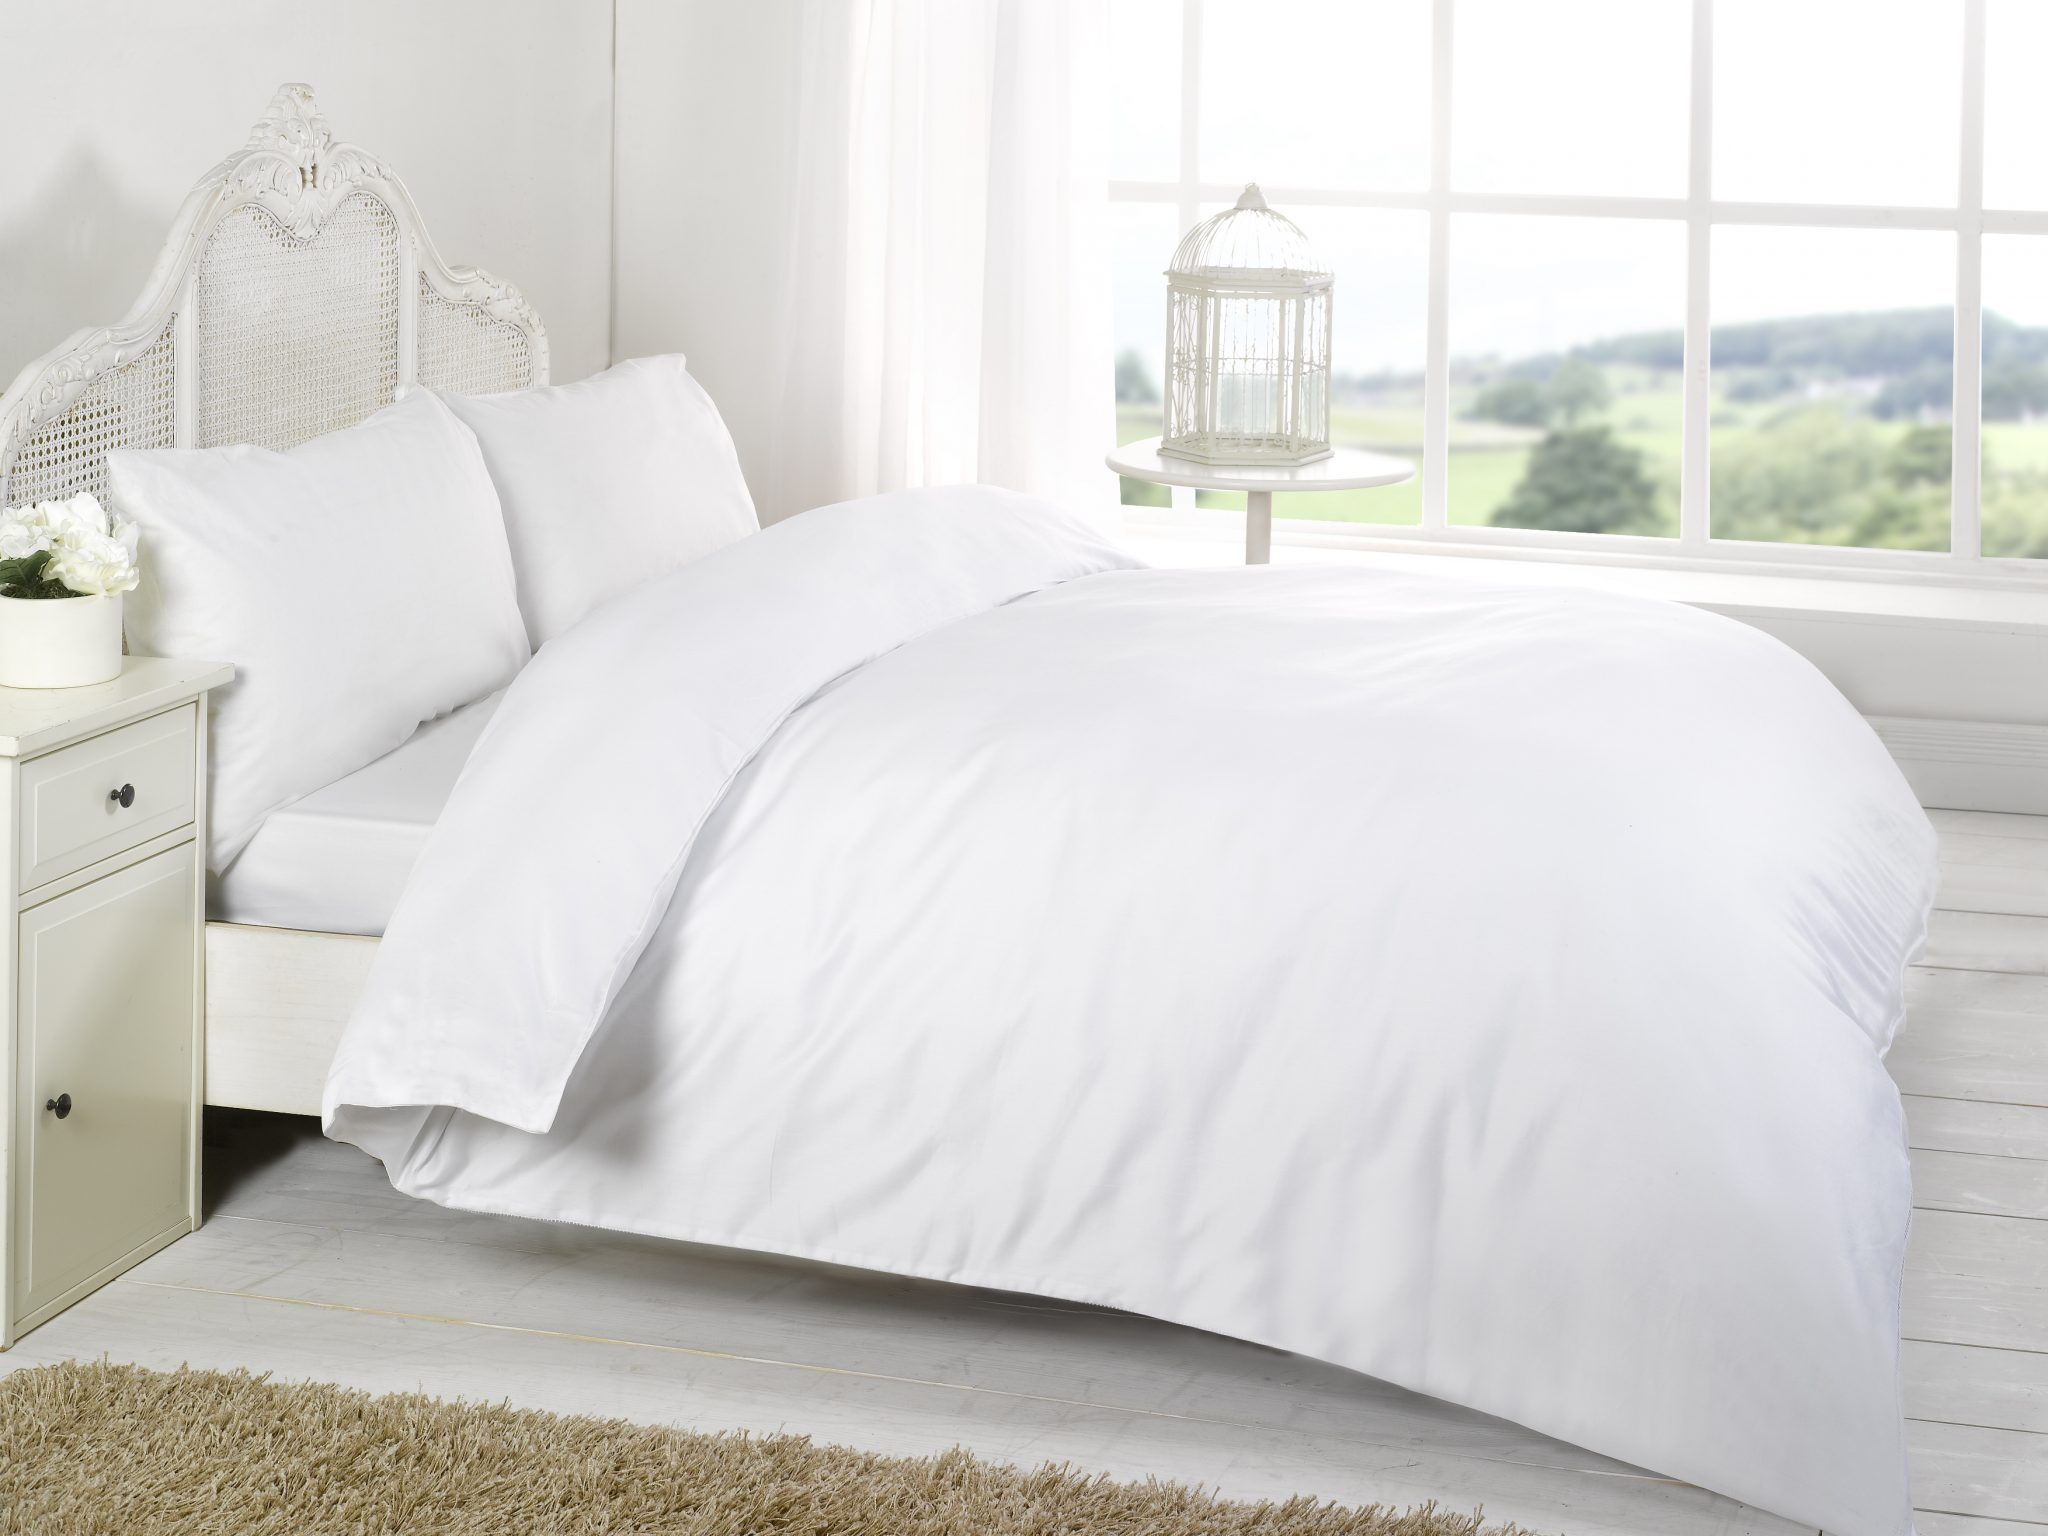 Pretty White Fitted Sheets In 100 Cotton 400tc Whitesheets